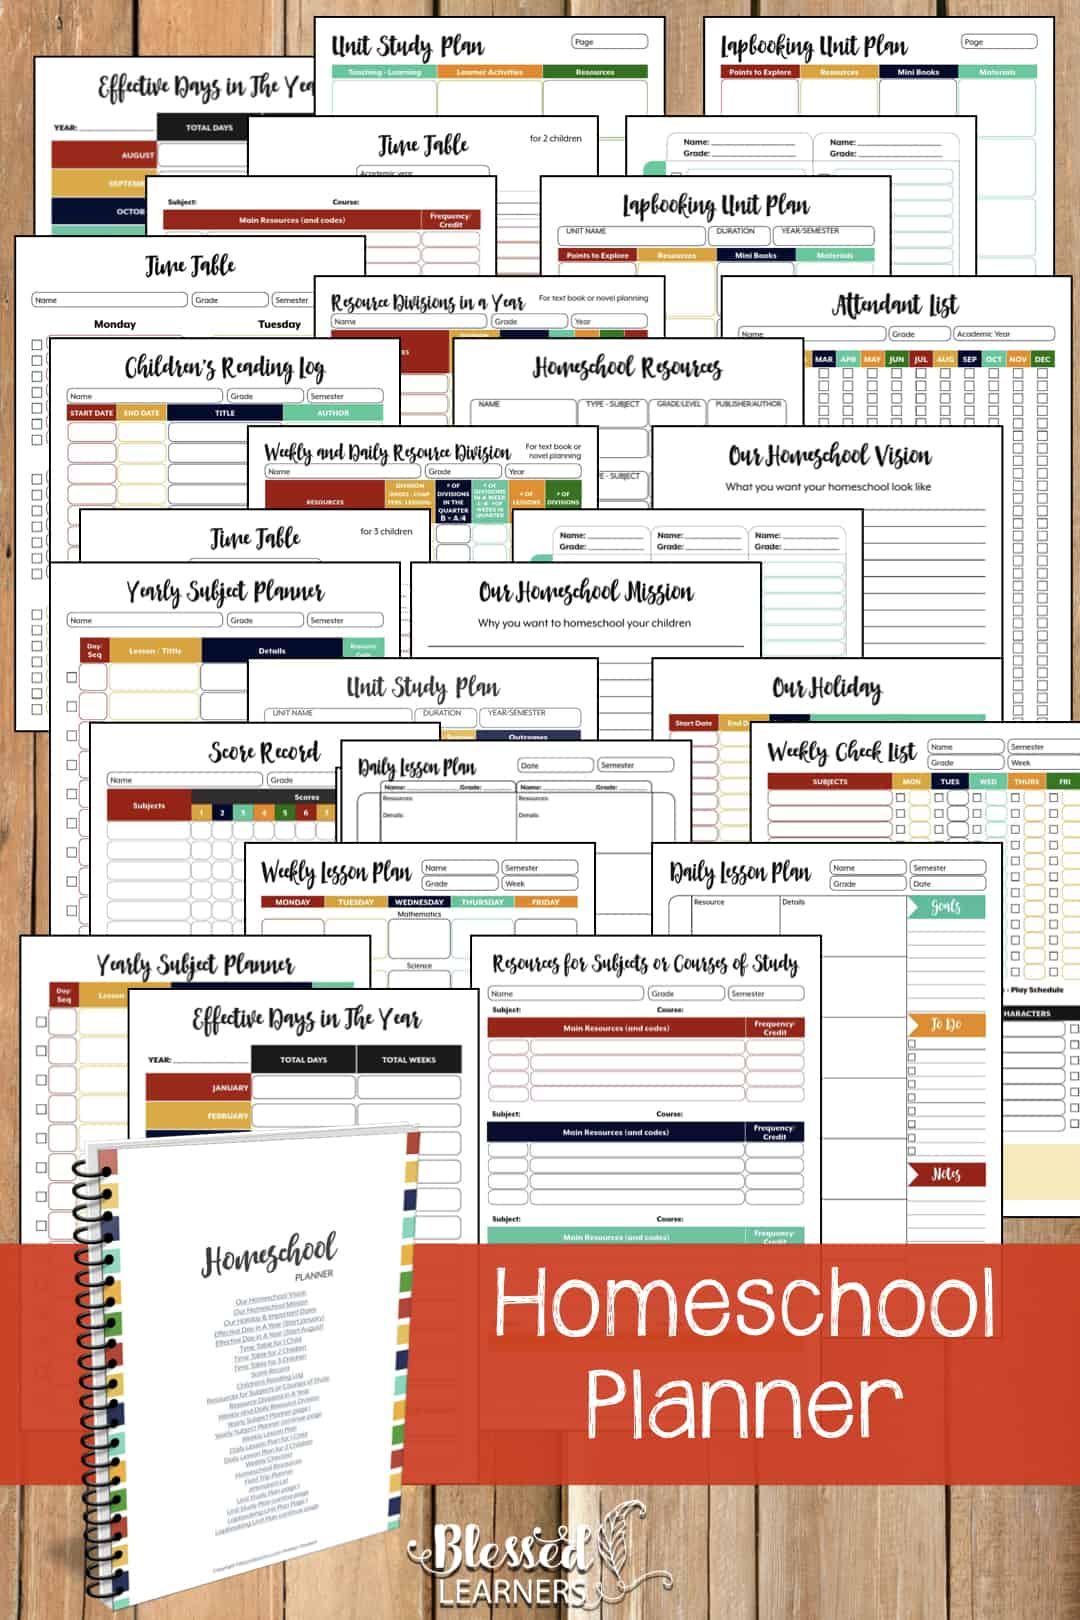 The Ultimate Life Planner Organizer for Moms is the perfect solution to getting most aspects of your home-and-work life well organized. A total of 230+ printable pages you can customize to use are included in the digital file. | Homeschool Planner | #Planner #Printable #TimeManagement #Organizer